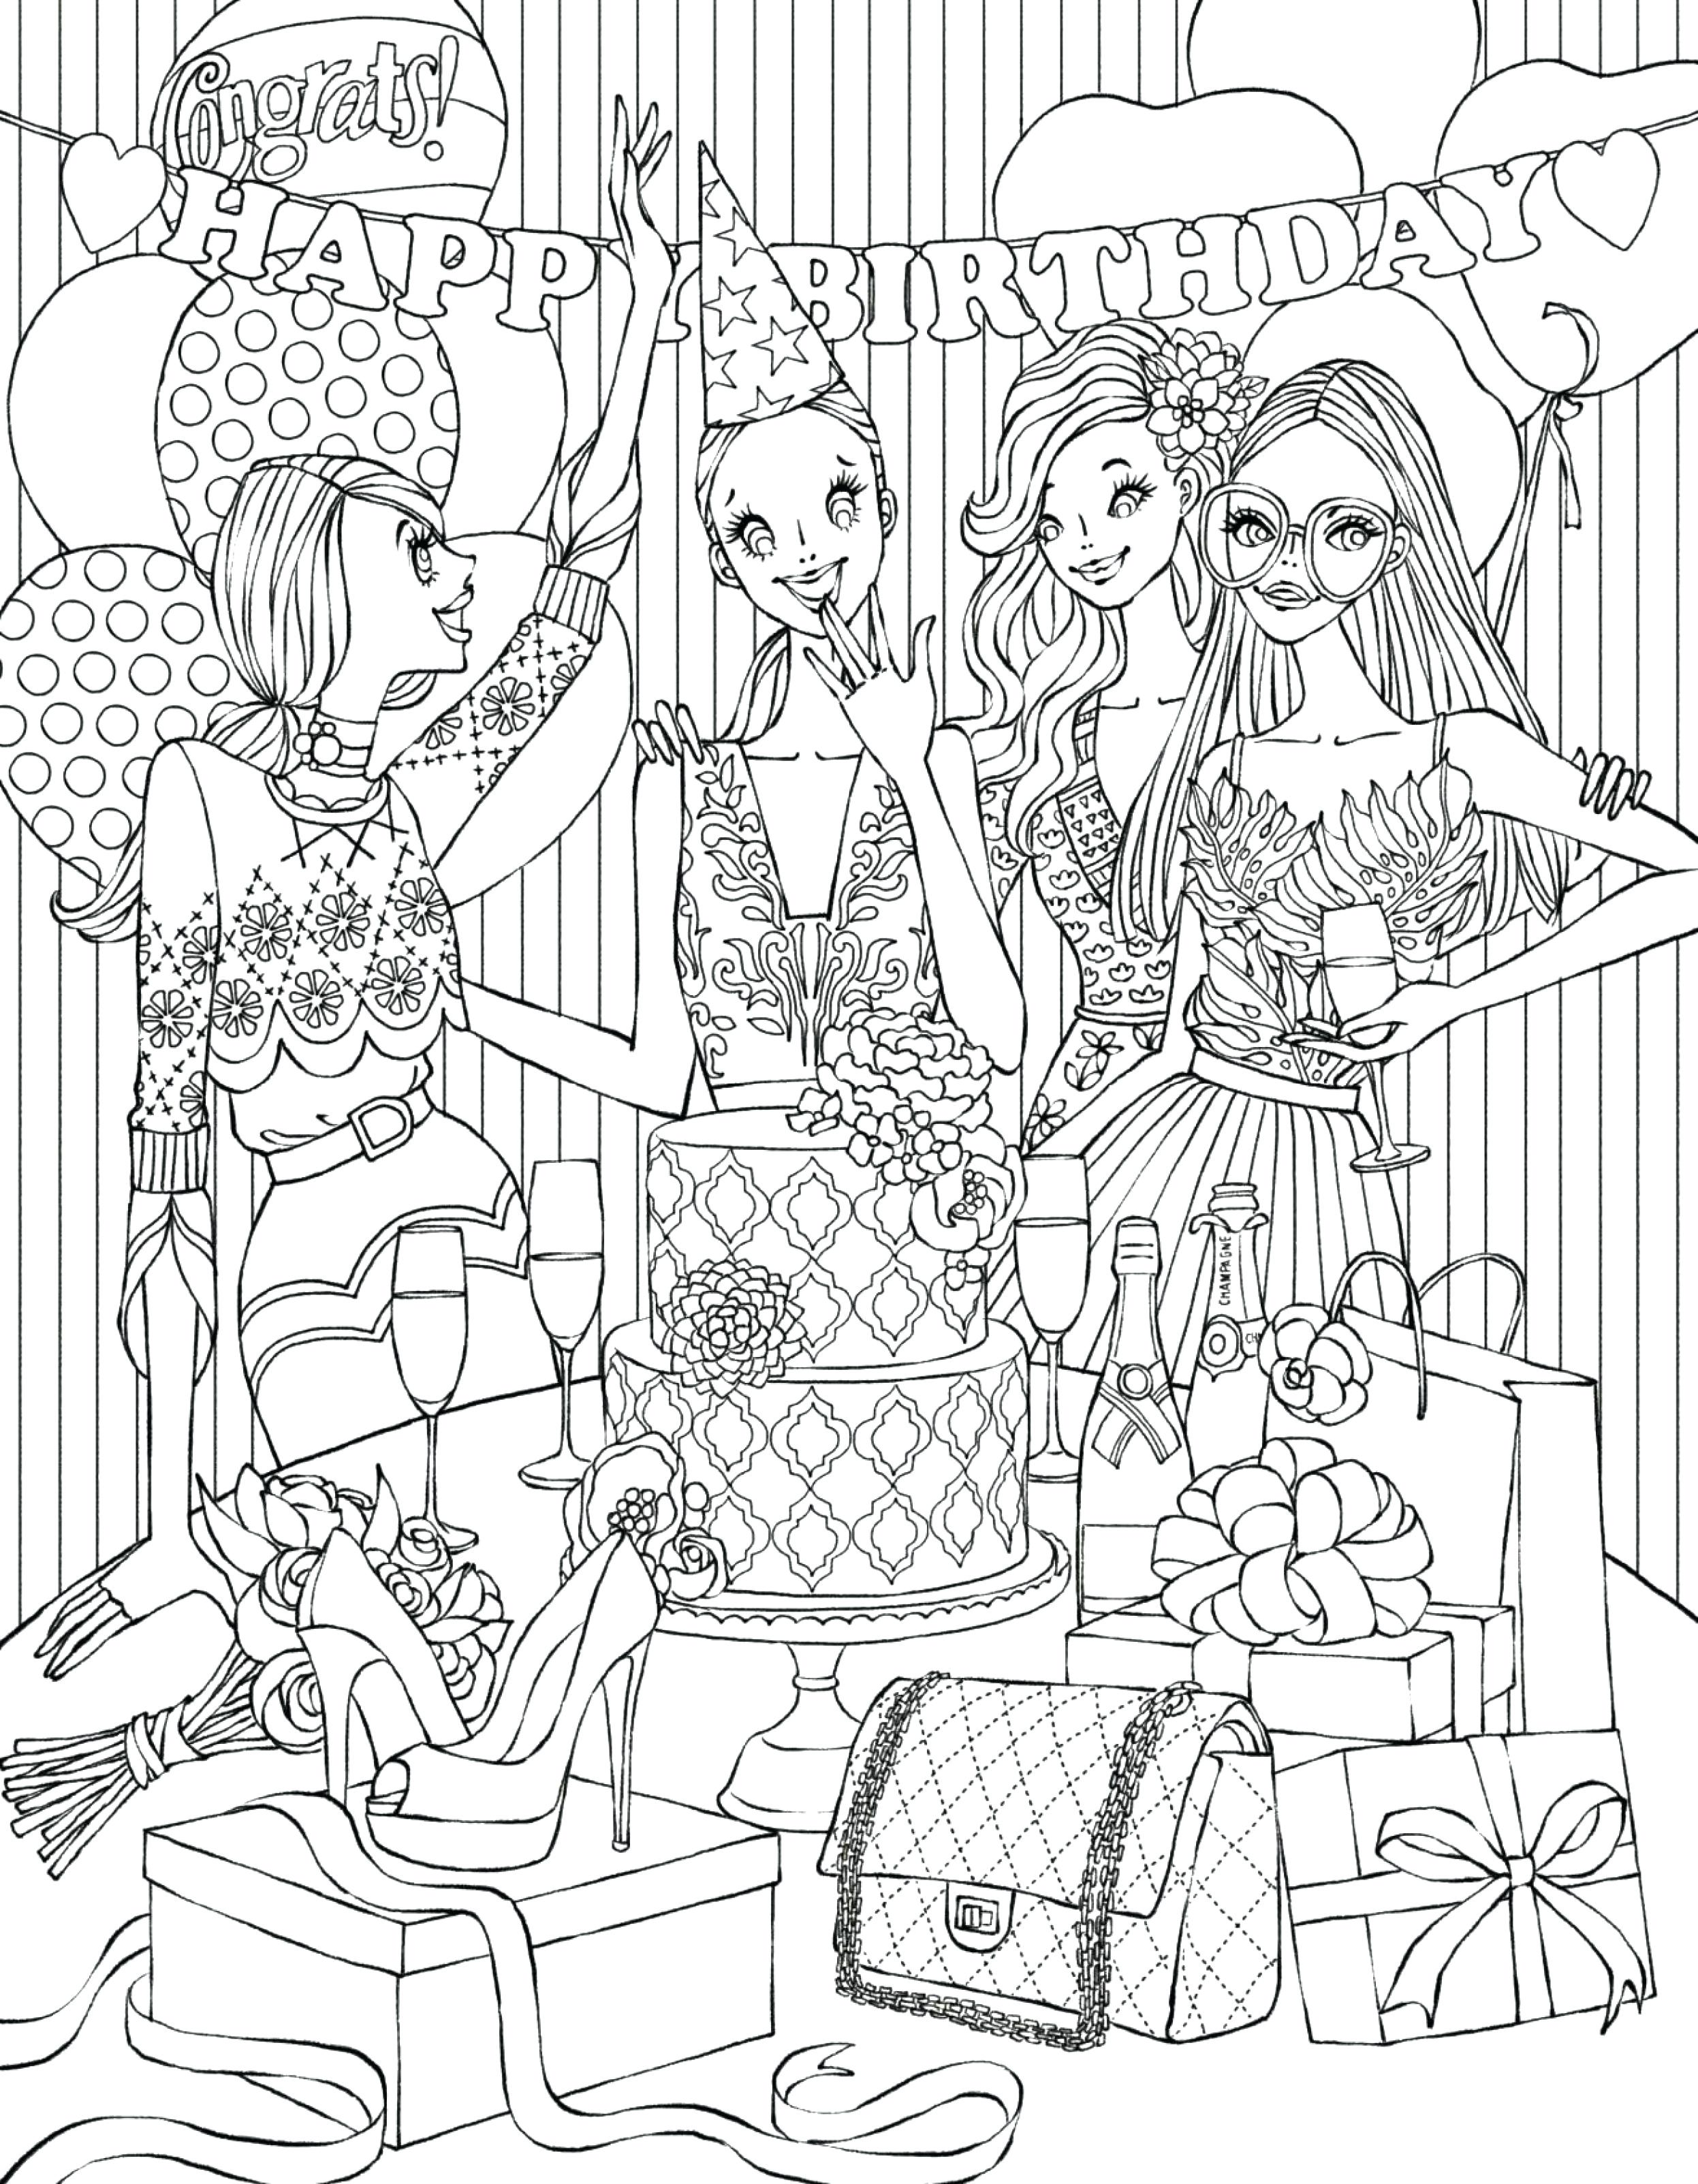 Christmas Coloring Pages With Addition Free Printable Adult Worksheet For Middle